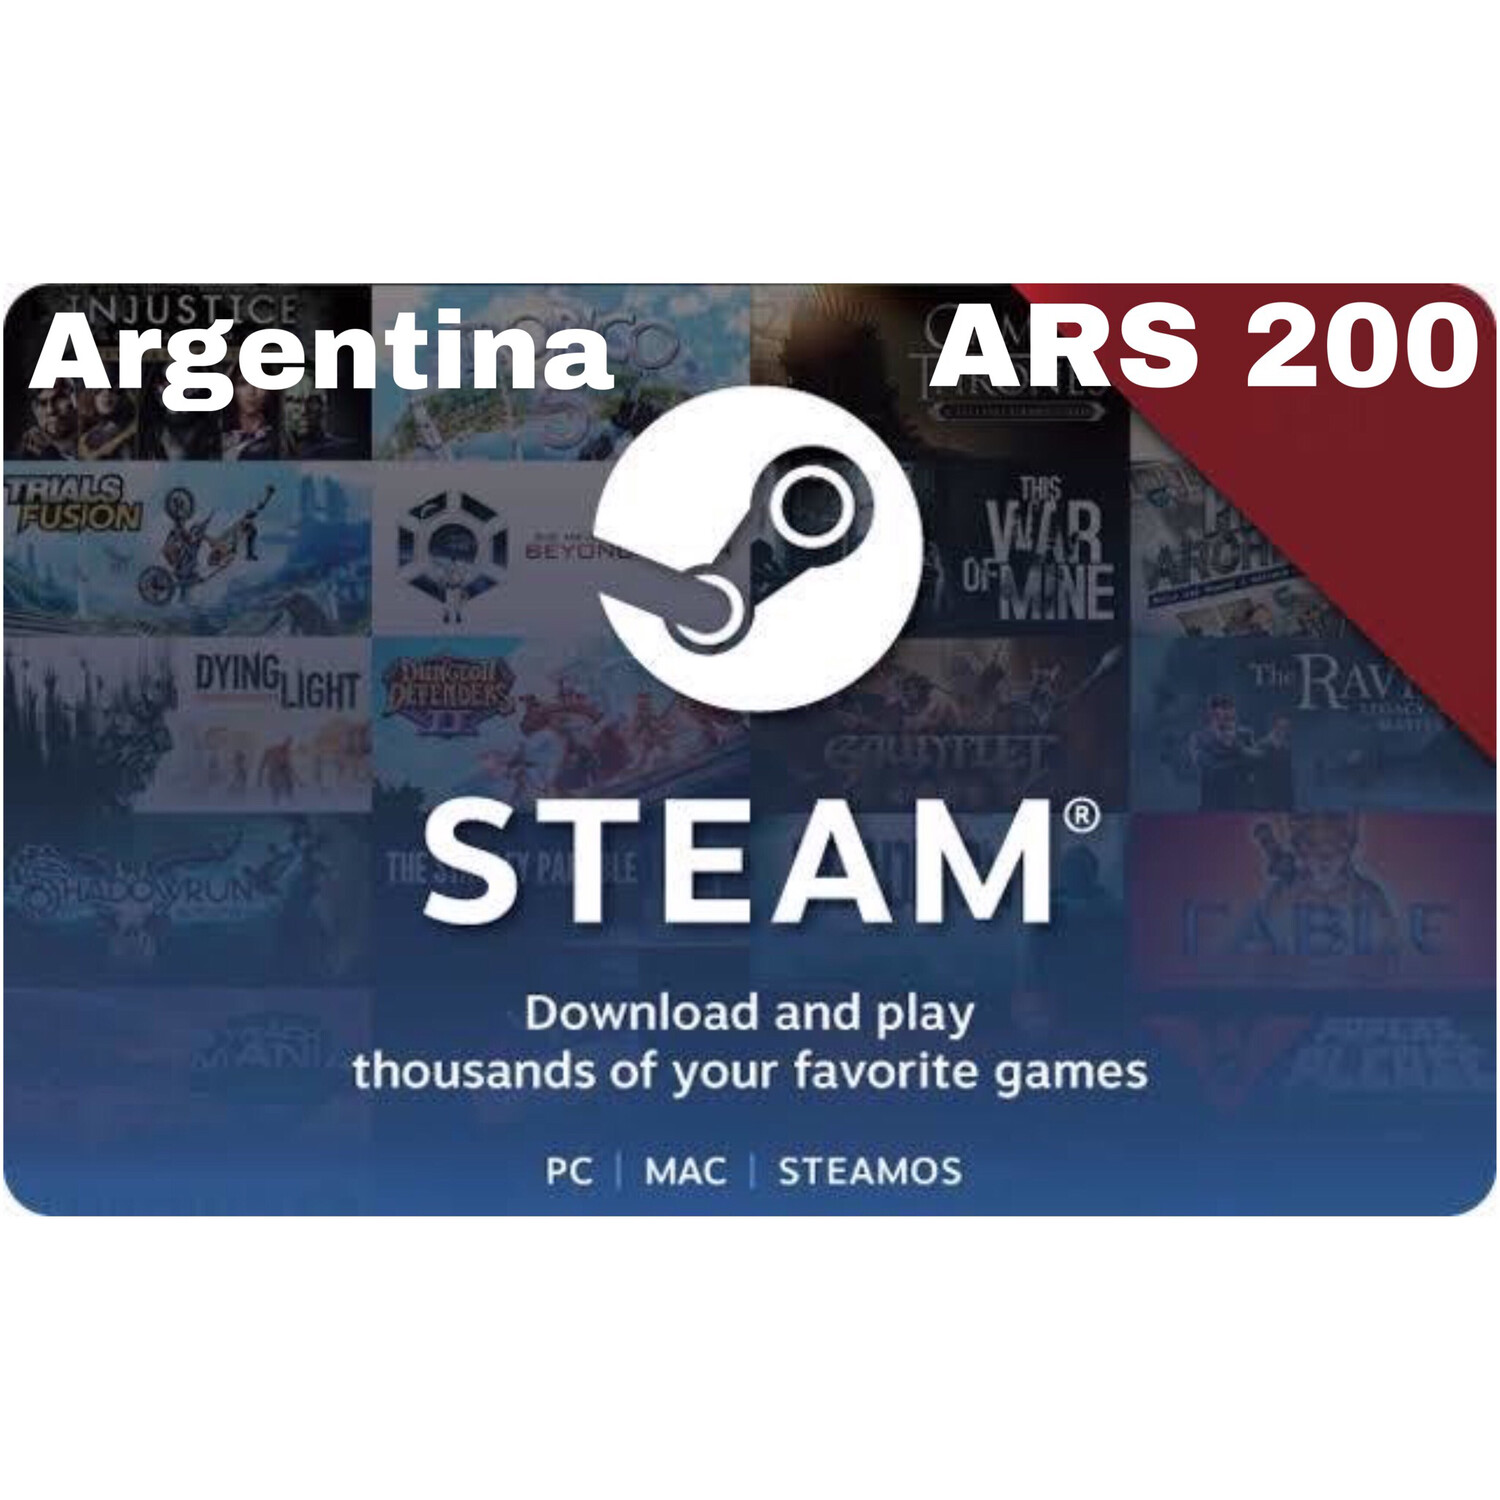 Steam Wallet Code Argentina ARS 200